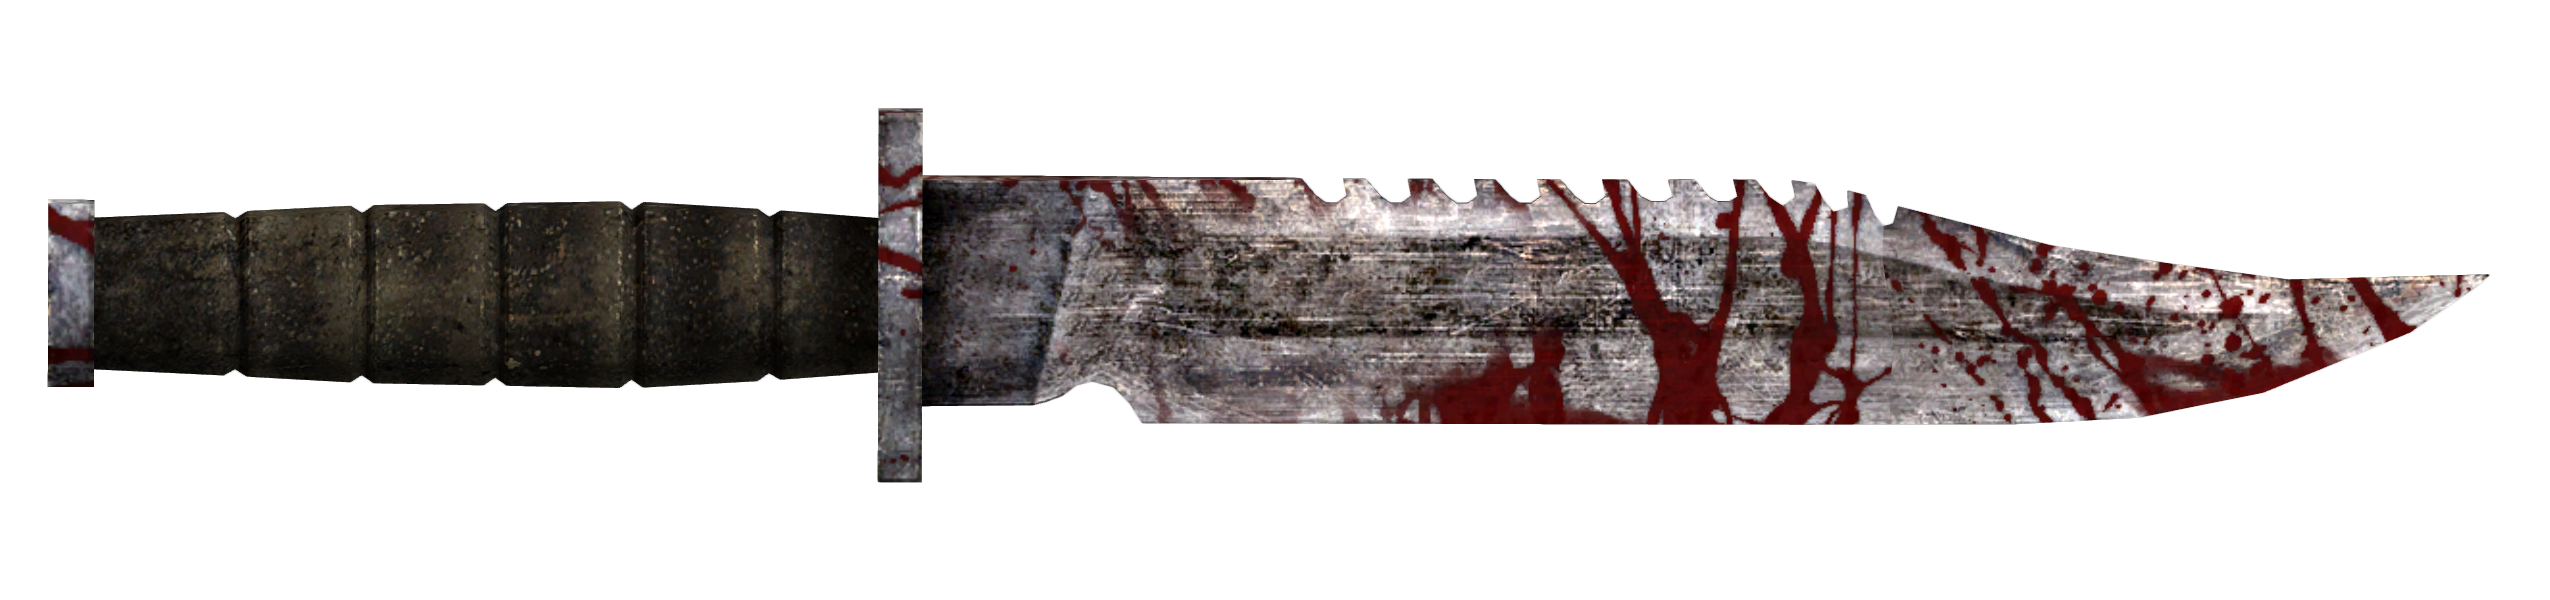 Chance's knife | Fallout Wiki | FANDOM powered by Wikia